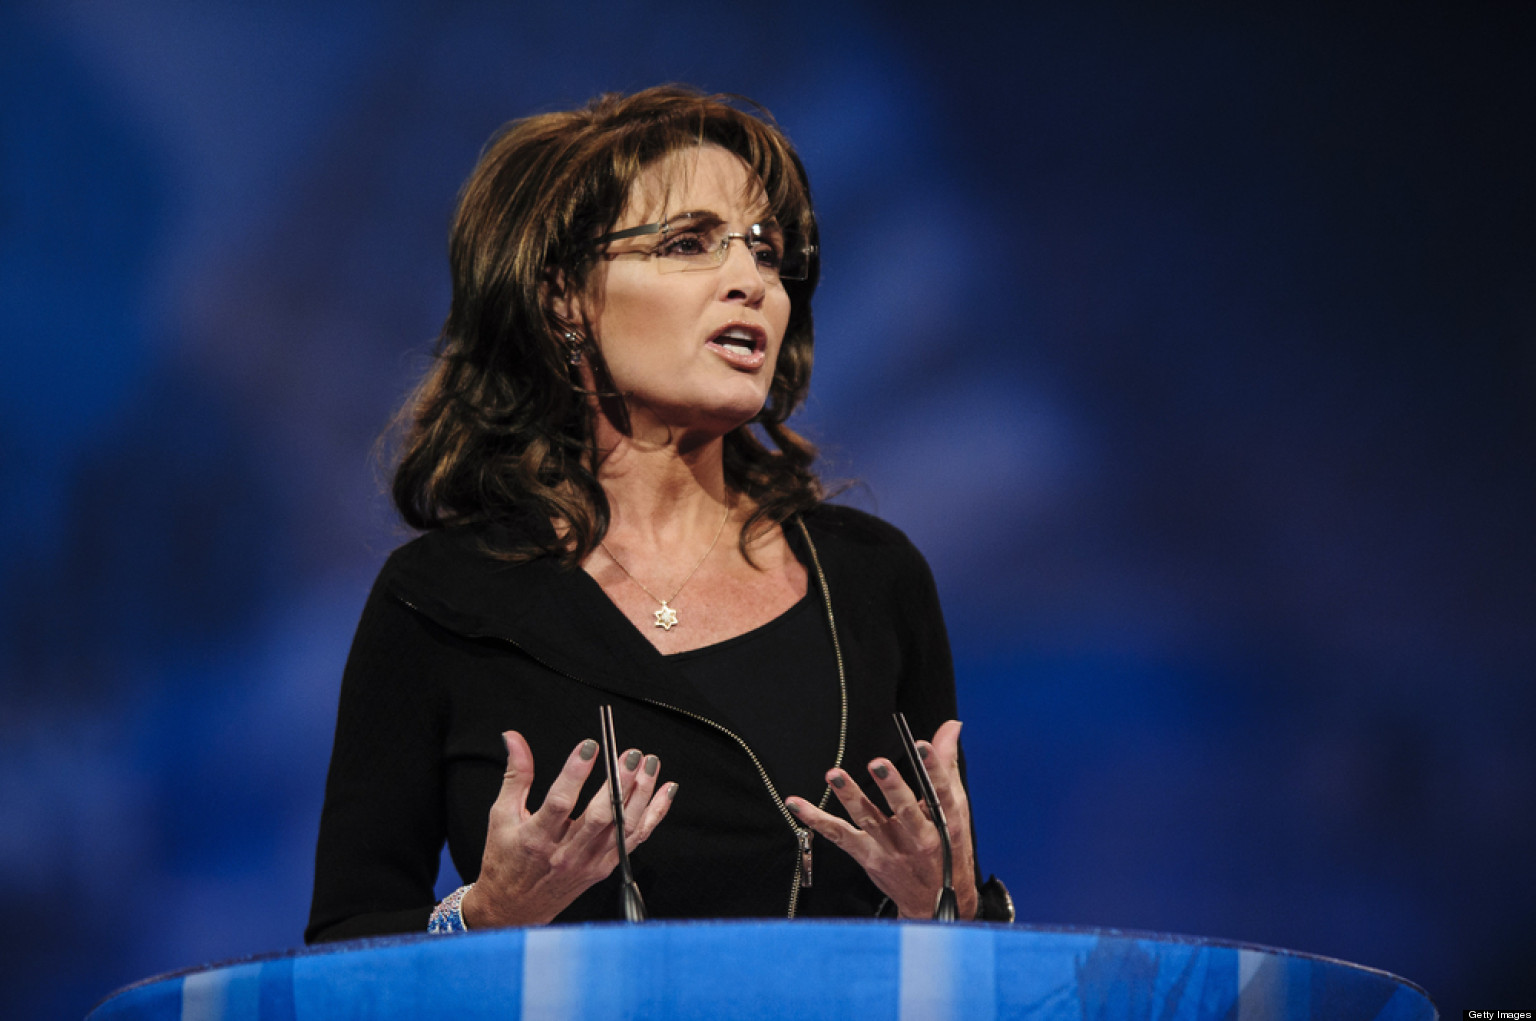 https://i1.wp.com/i.huffpost.com/gen/1120149/thumbs/o-SARAH-PALIN-FREEDOM-facebook.jpg